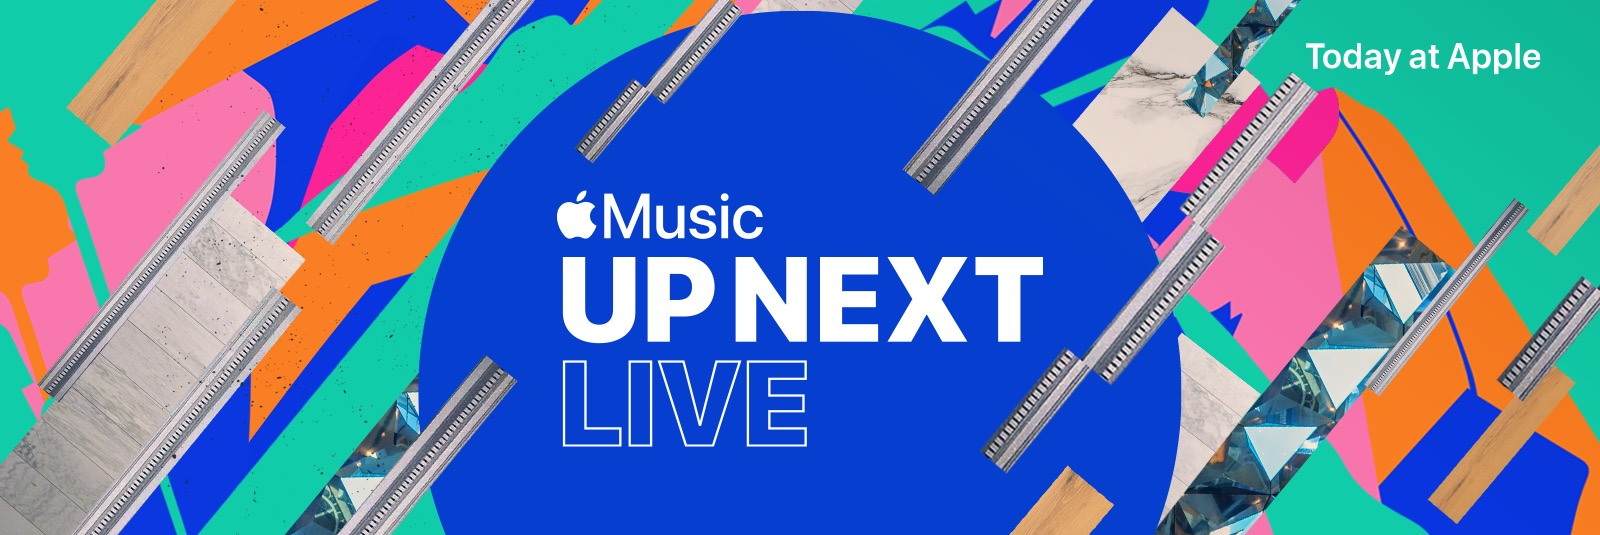 "Evento musical ""Up Next Live"", da Apple"